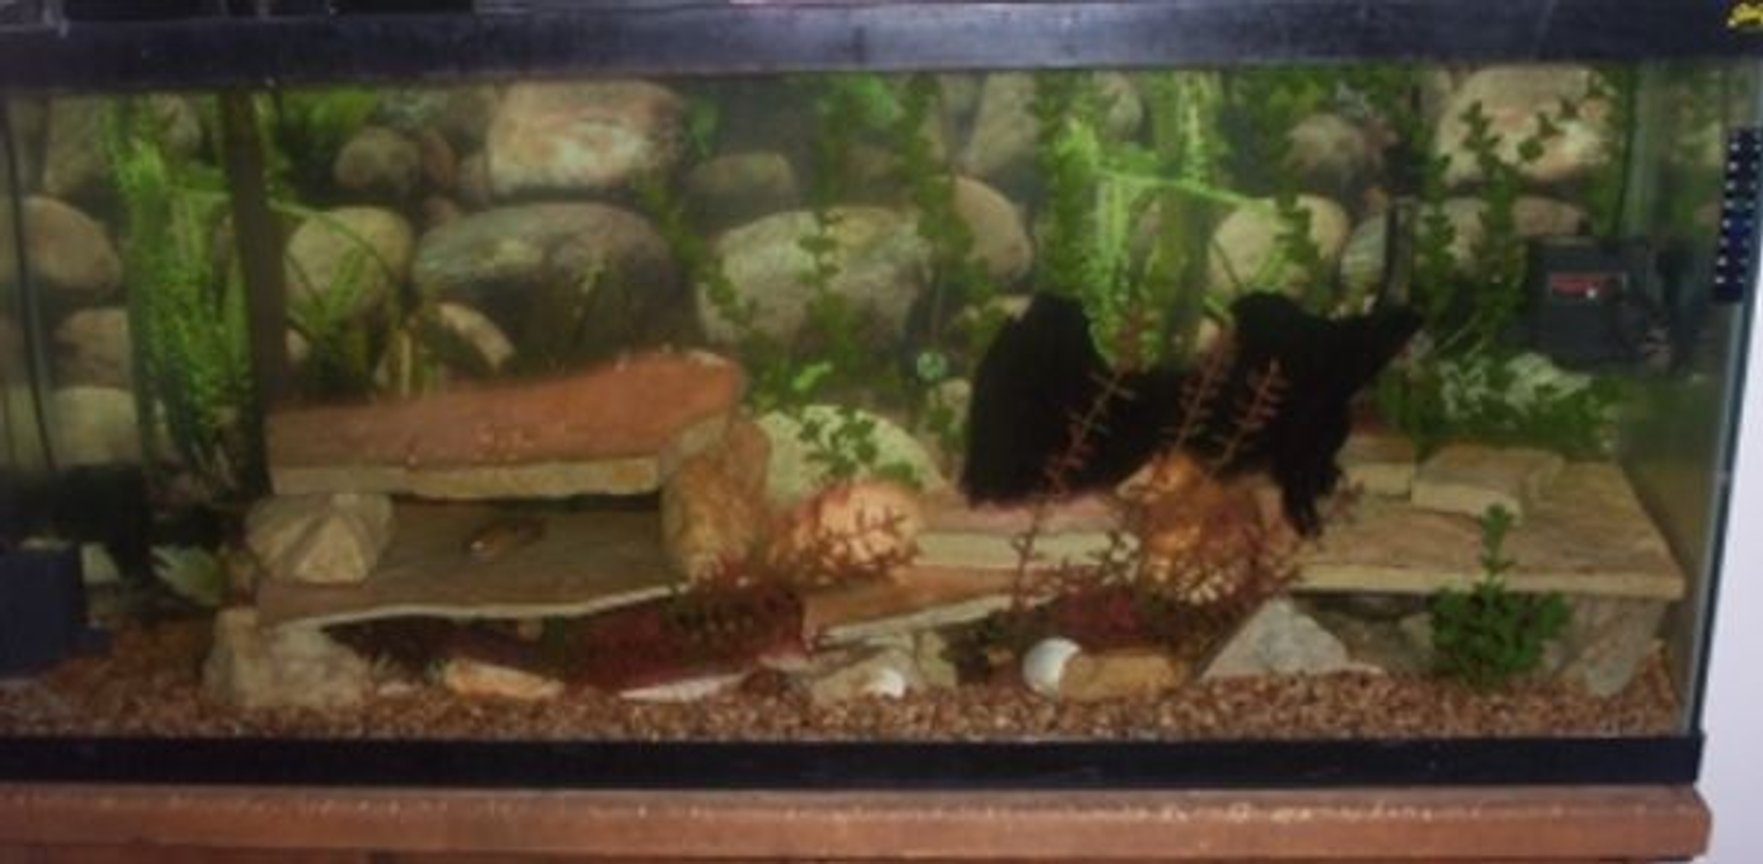 fish tank picture - I've updated my tank.Put in 2 pumps.1 at bottom left and 1 at top right to keep water moving.I've also took out the seashell stuff and added driftwood ant a couple more shelfs.Made the tank more natural looking.